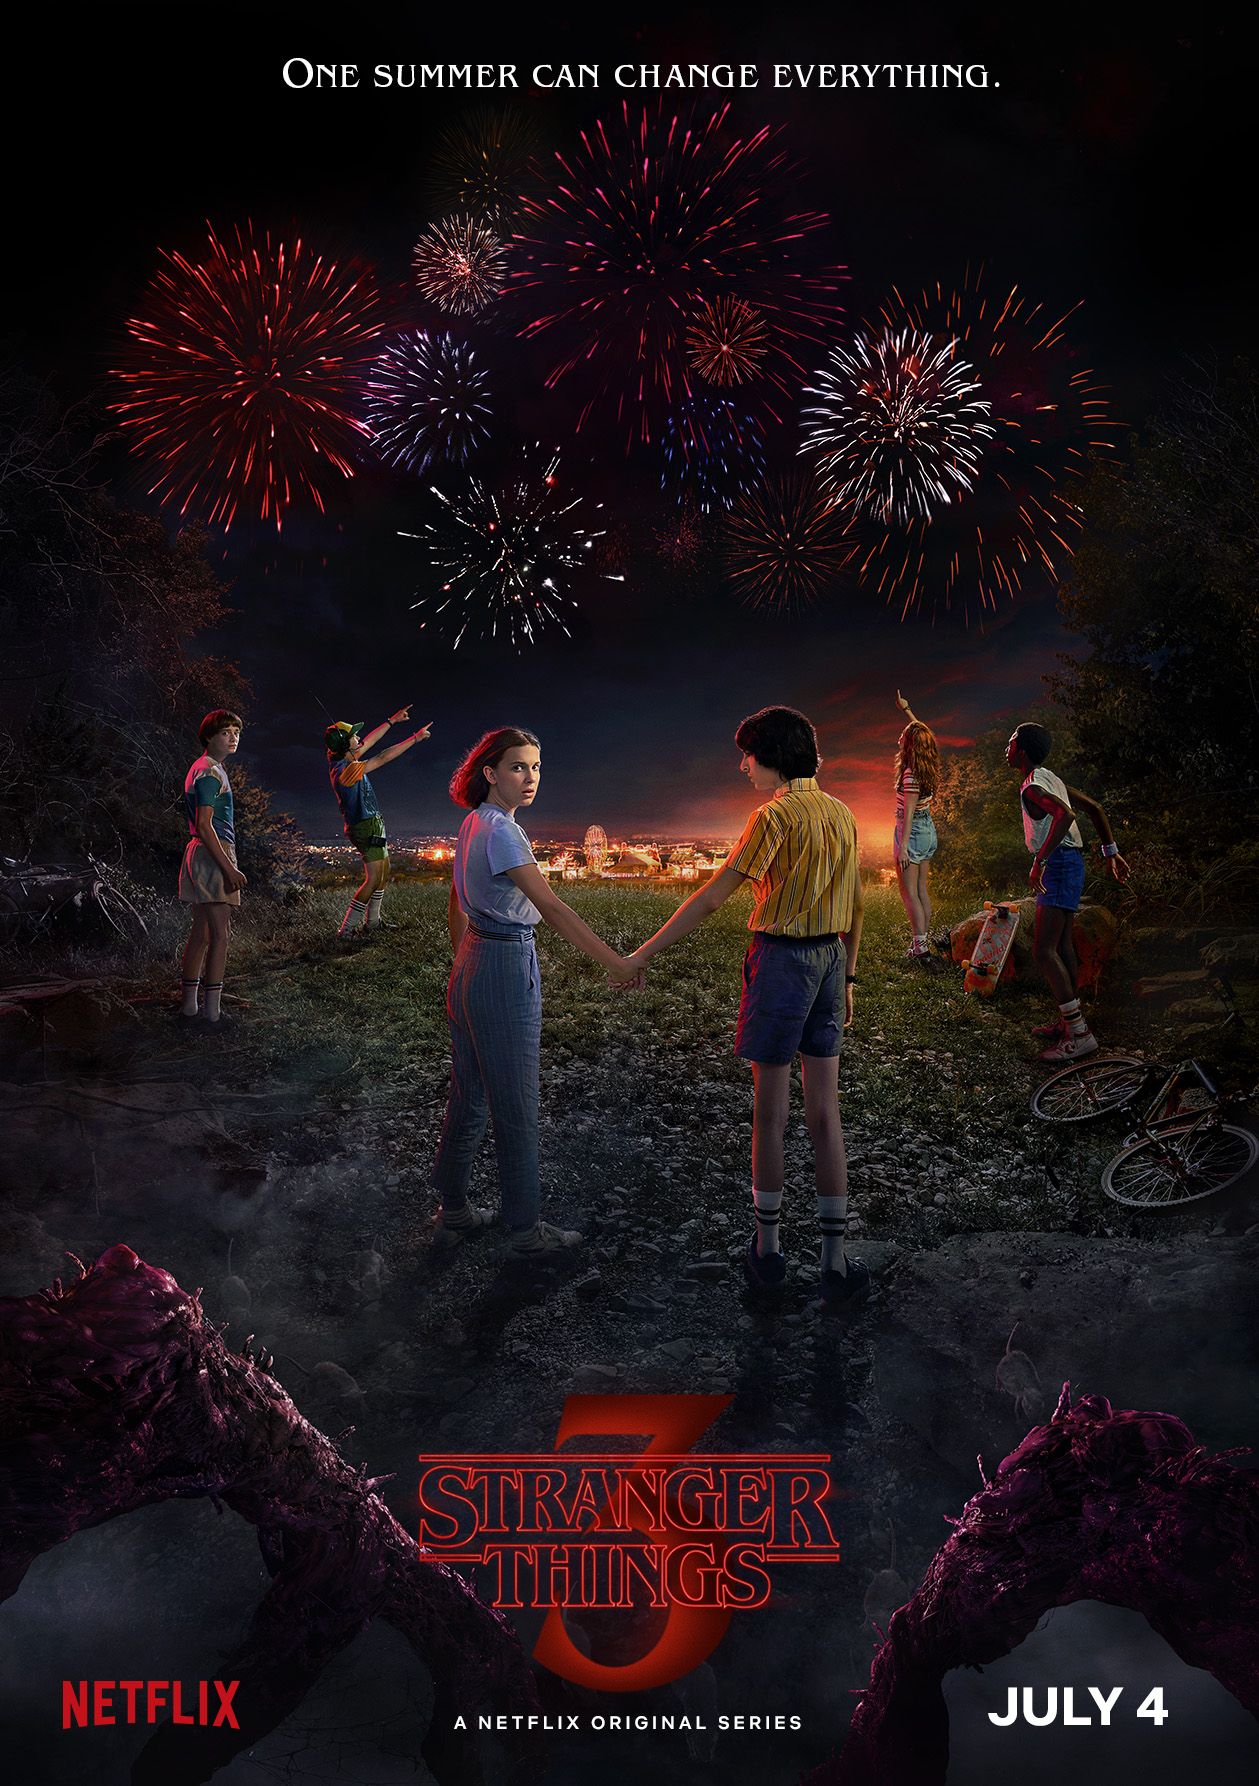 Stranger Things Season 3 Premiere